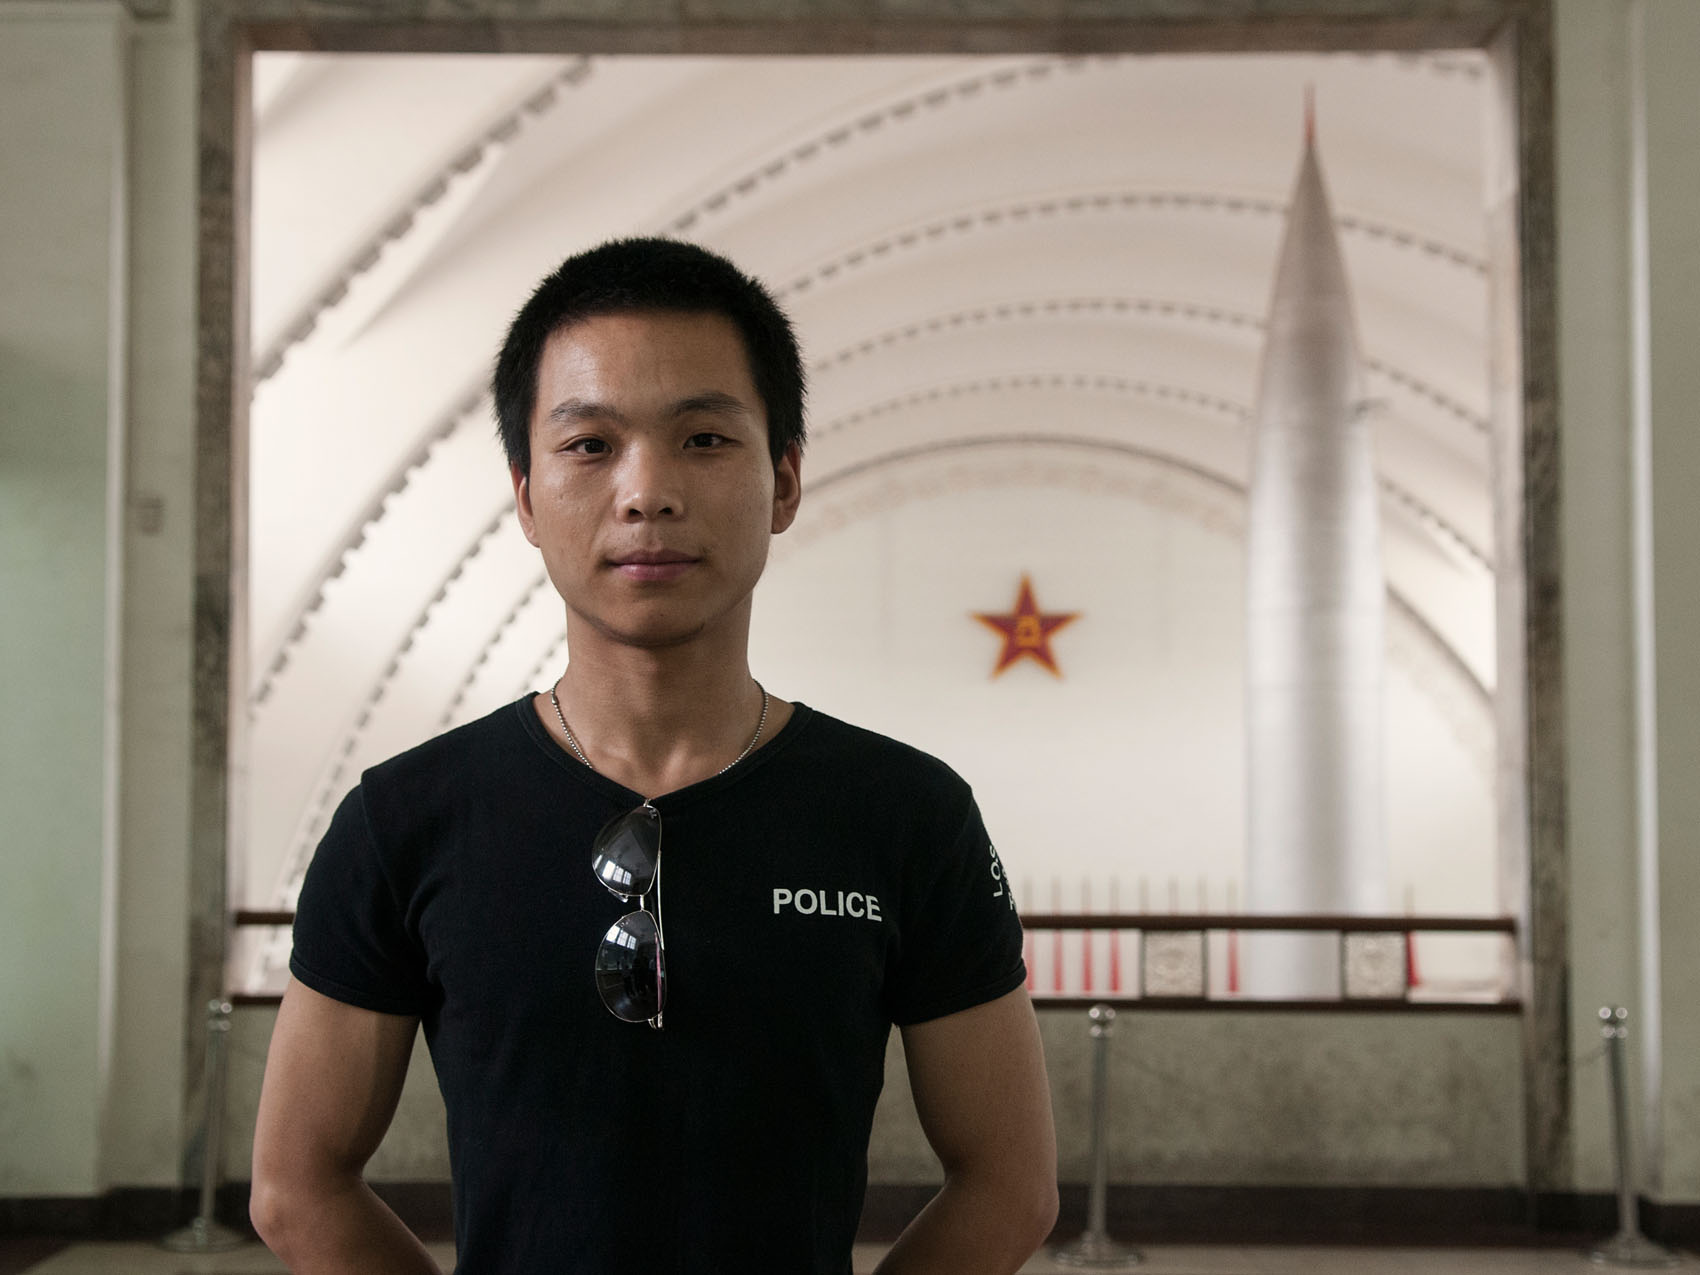 A young military enthusiast visiting the Military Museum in Beijing.